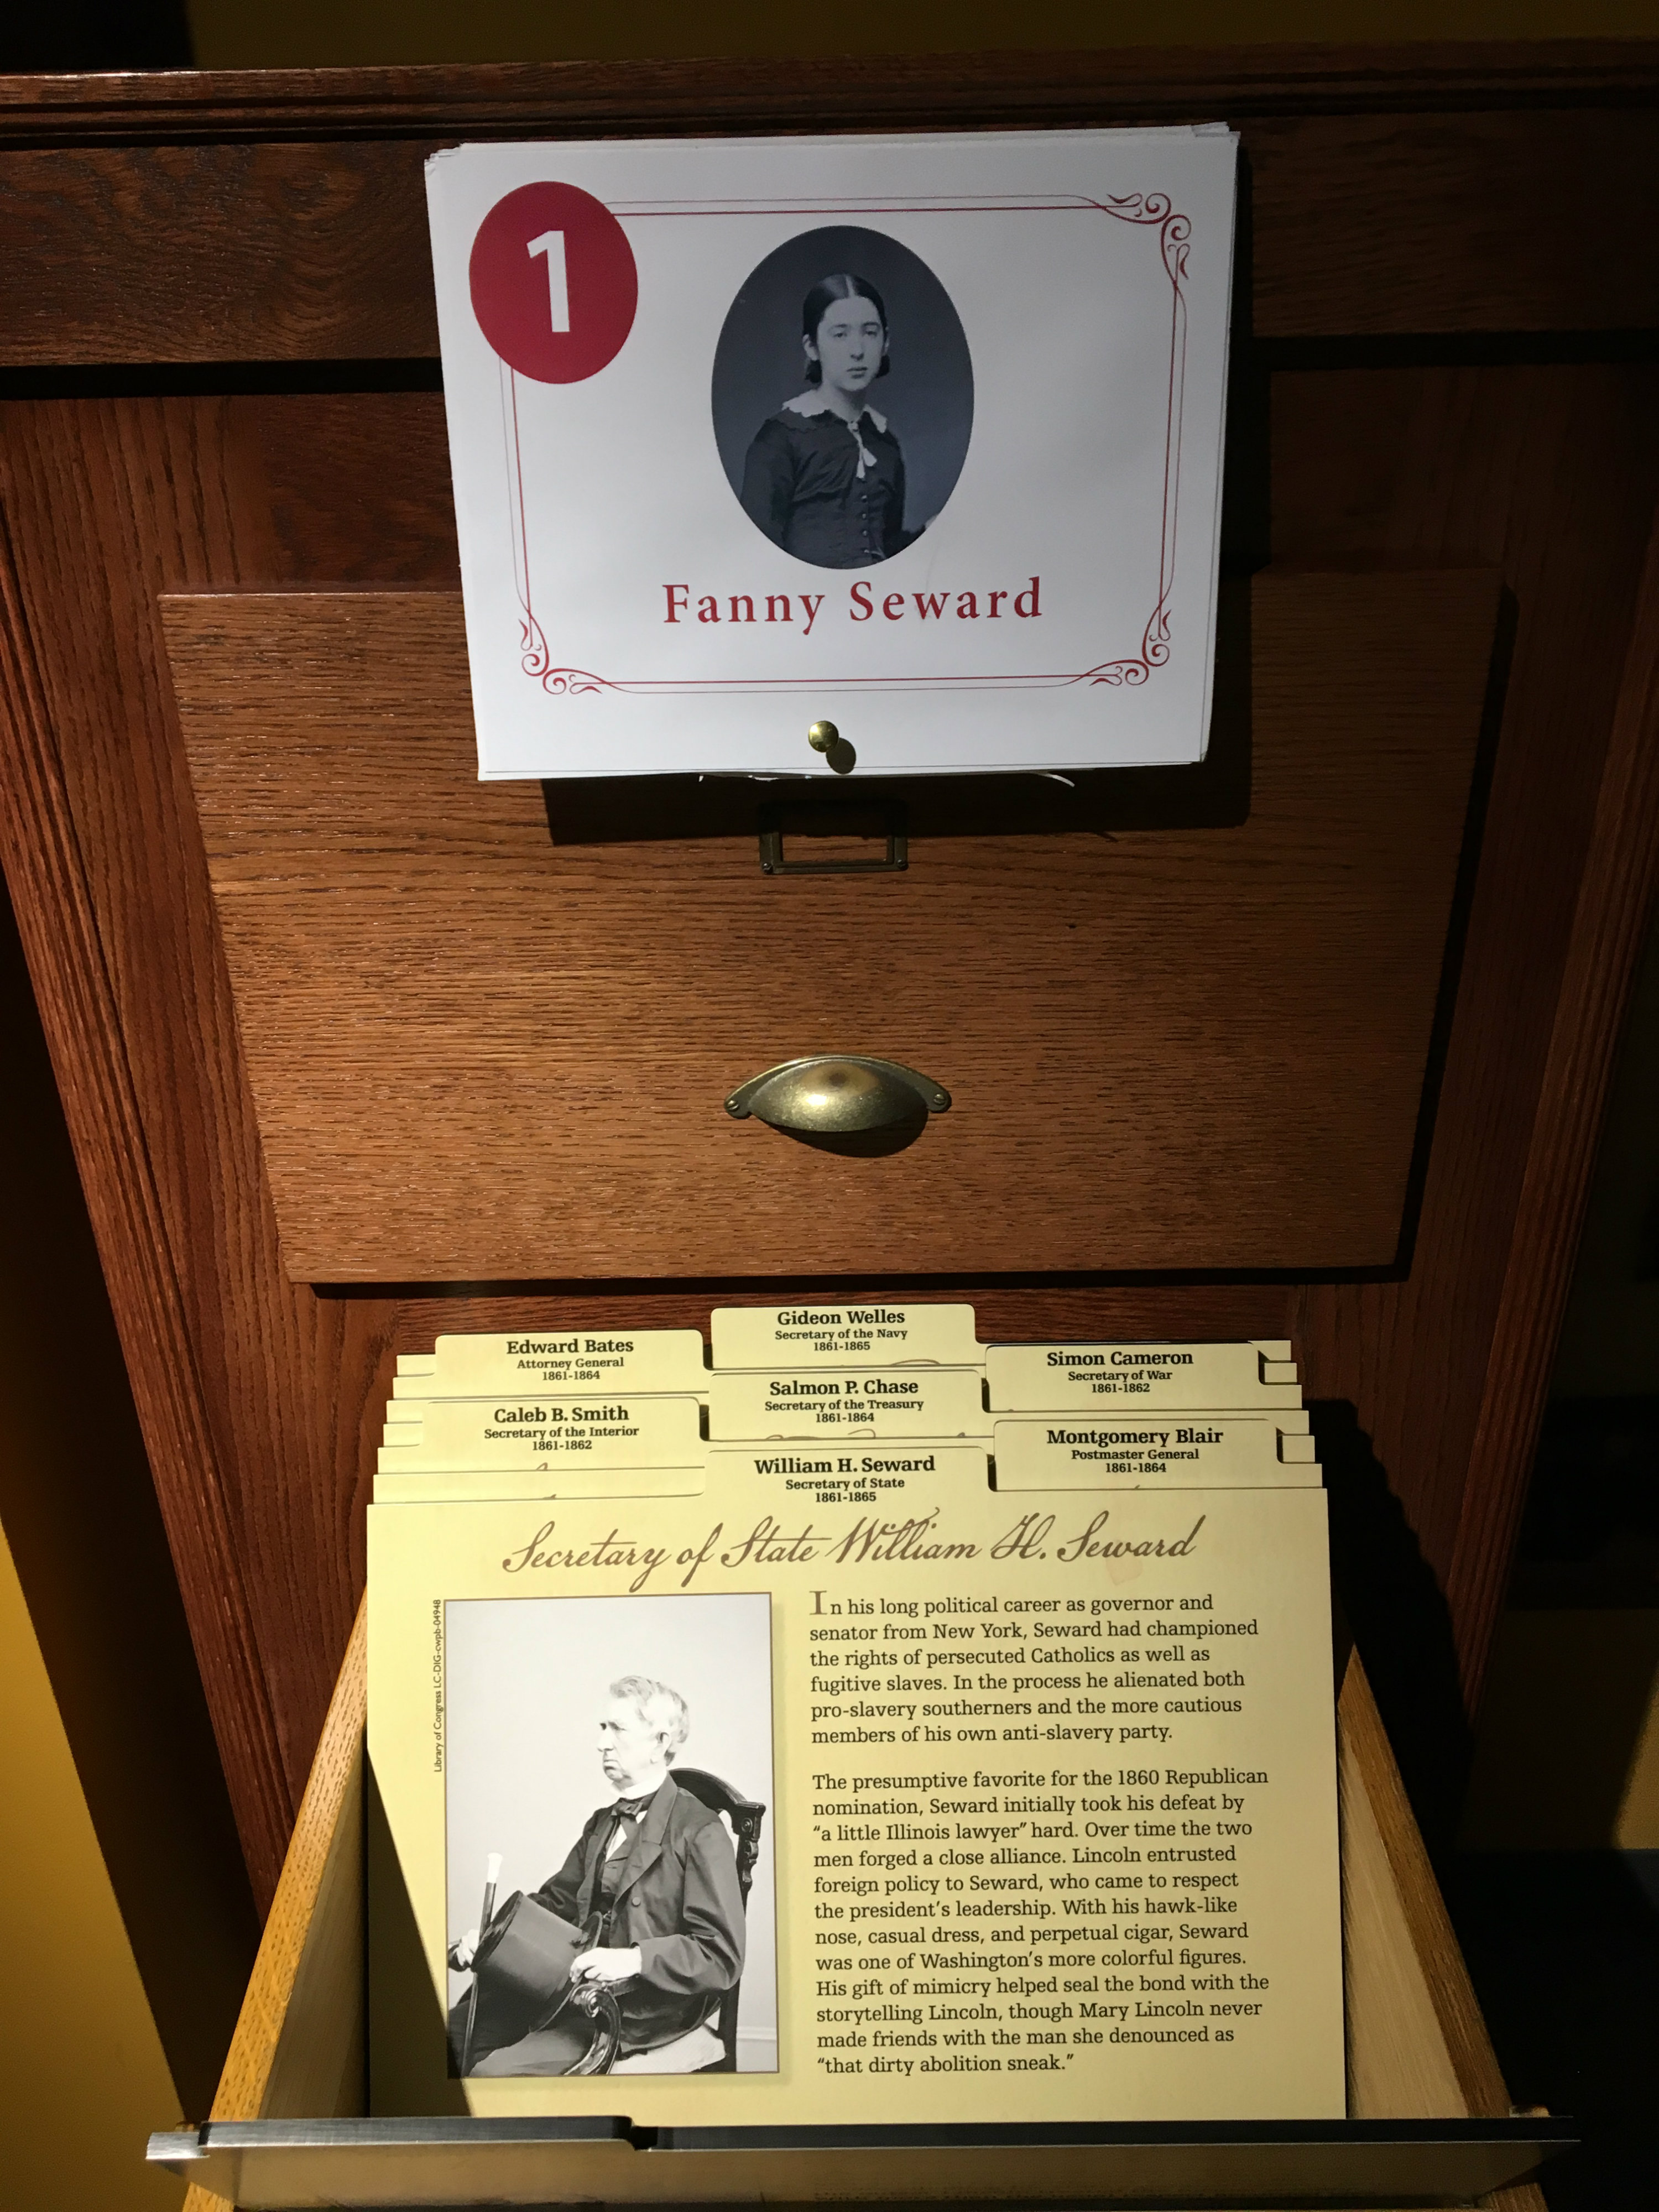 Above a cabinet in the Ford's Theatre Museum (where visitors can flip through information cards about President Lincoln's Cabinet members), is taped a black and white historical image of a young woman named Fanny Seward. The photo can be flipped up to open and reveal information about Ms. Seward (not shown).